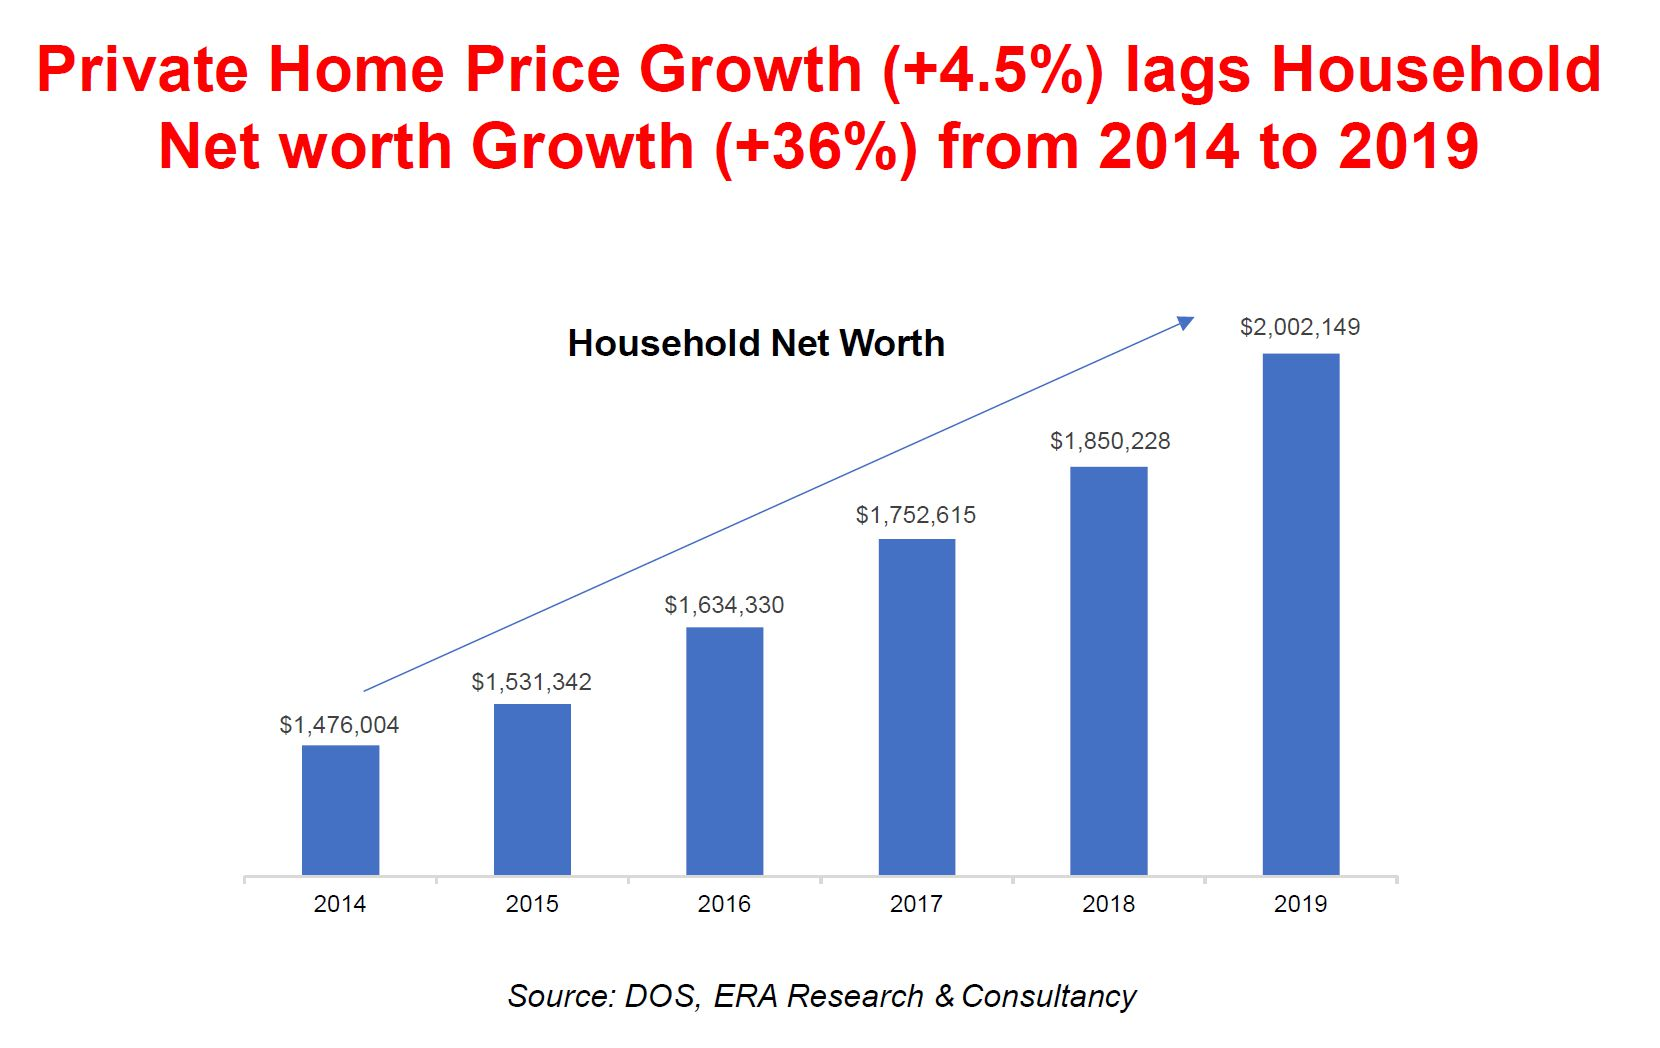 Private Property Price growth lags behind Household Monthly Income